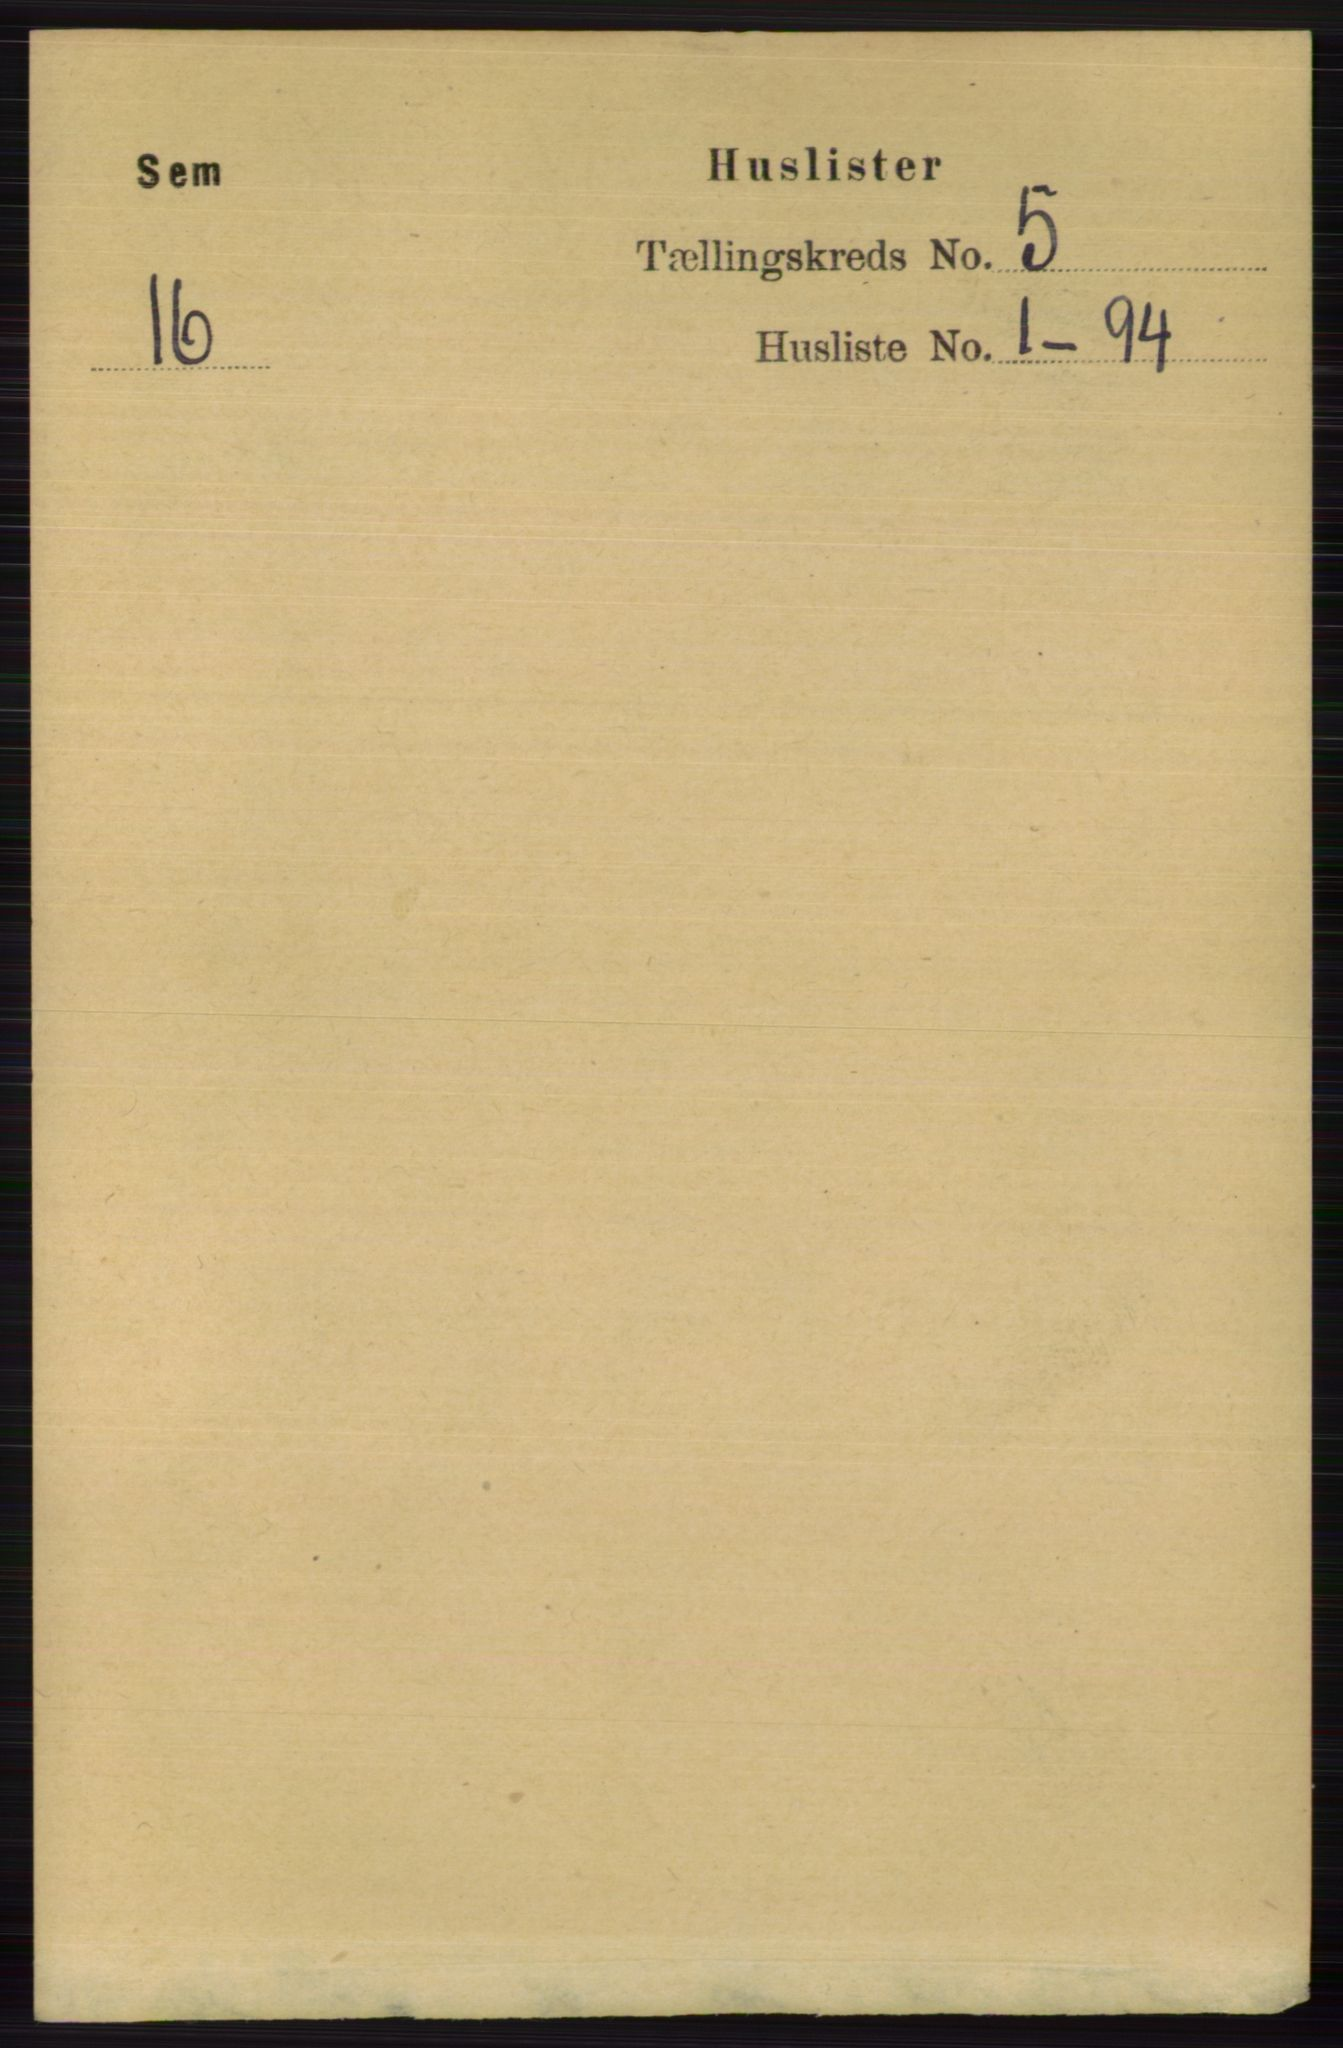 RA, Folketelling 1891 for 0721 Sem herred, 1891, s. 1965